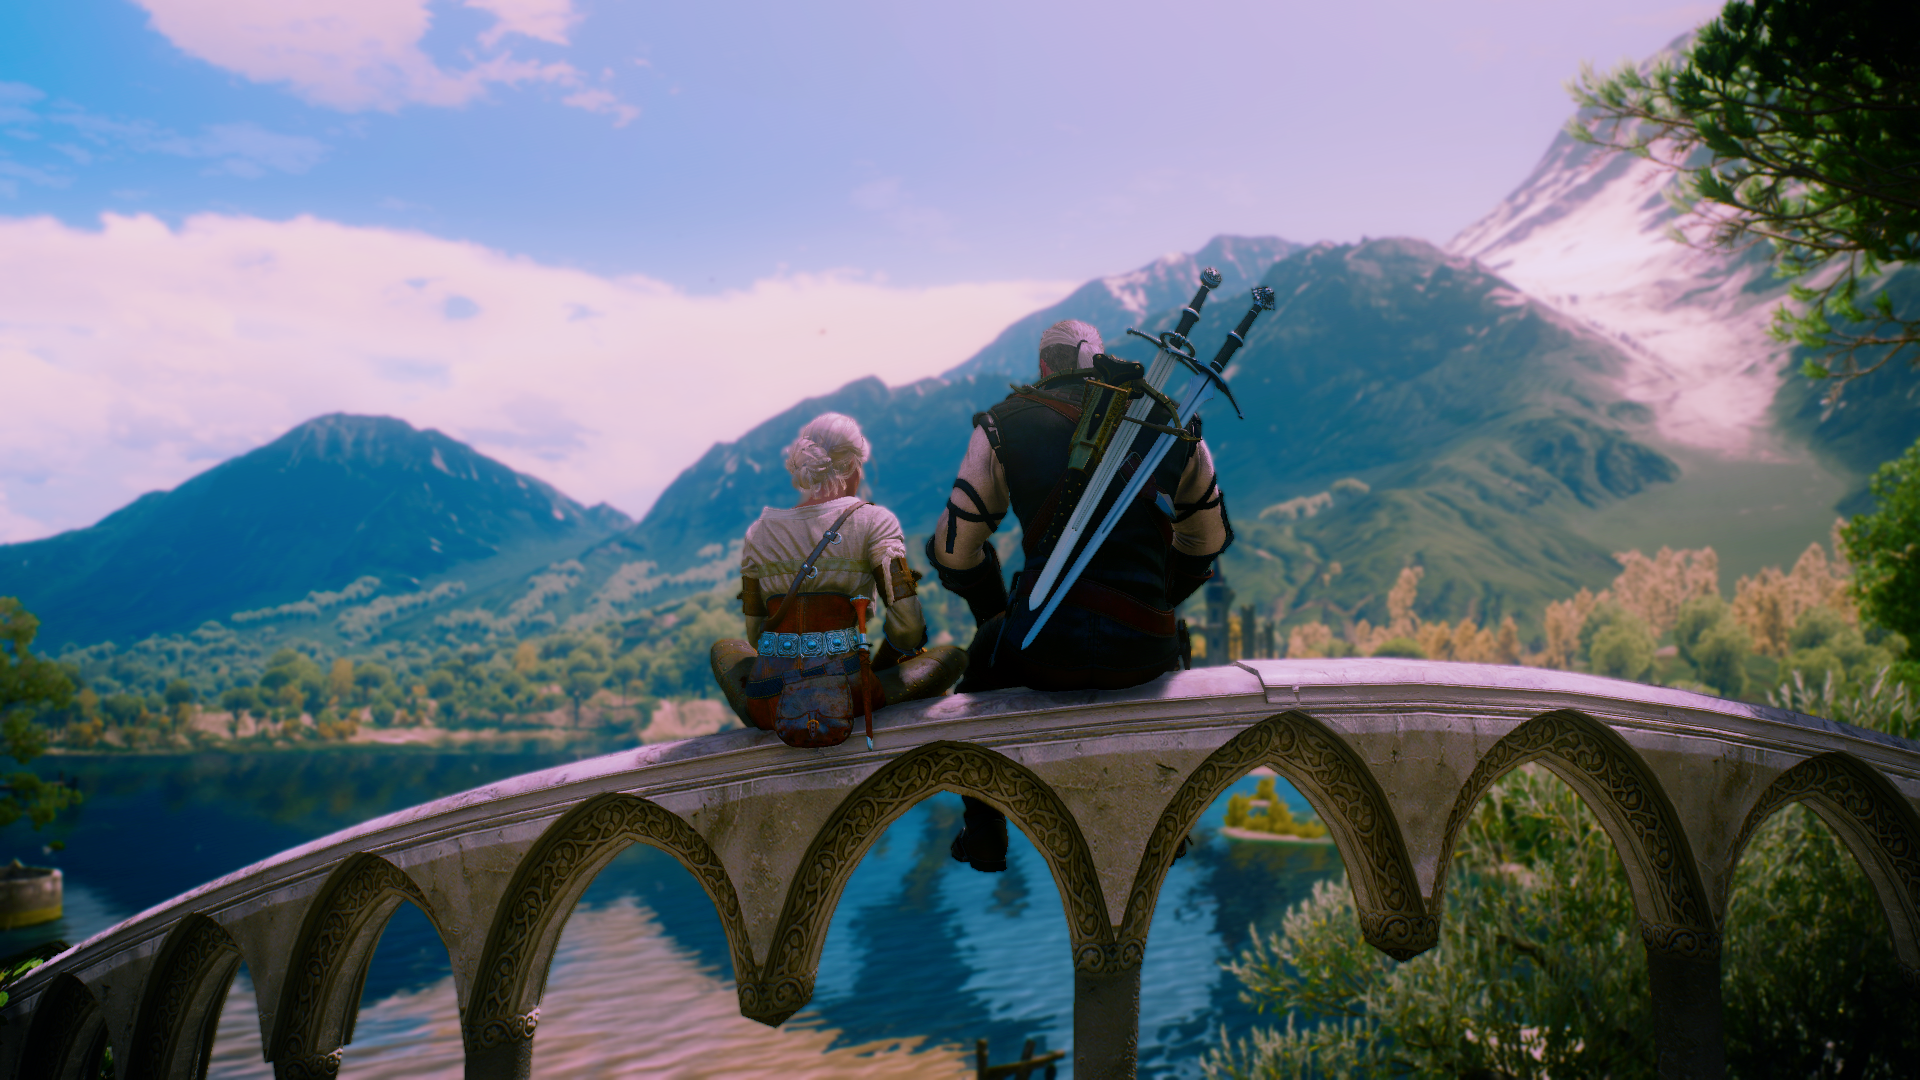 The-Witcher-Screenshot-mix-of-4k-and-1080p-TheWitcher-PS-WILDHUNT-PSshare-gam-wallpaper-wpc5809457